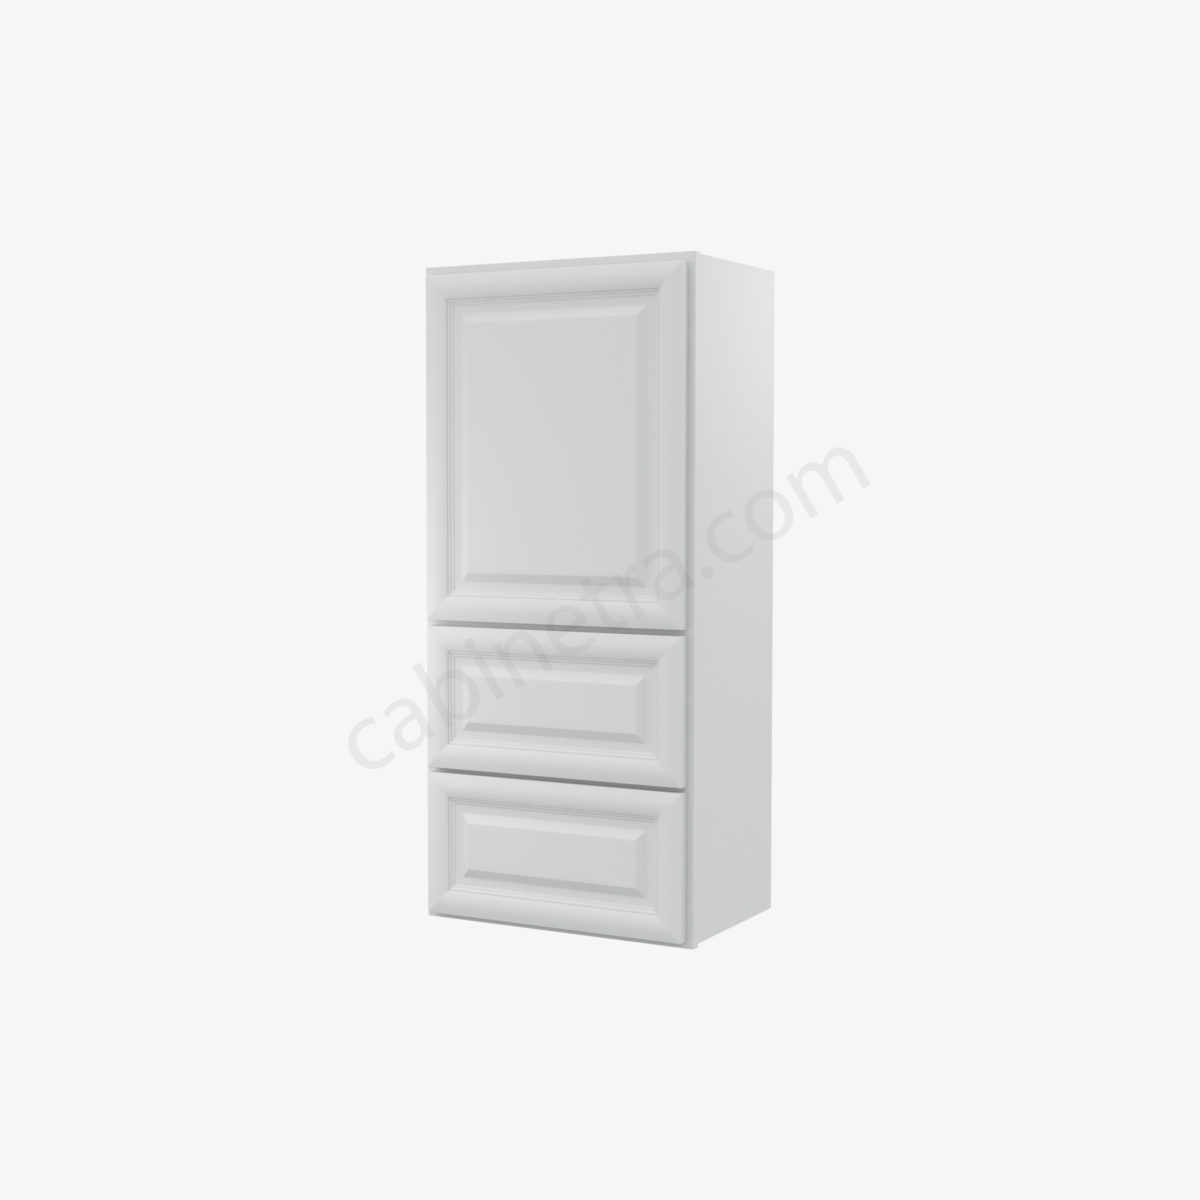 KW W2D1848 0  Forevermark K White Cabinetra scaled